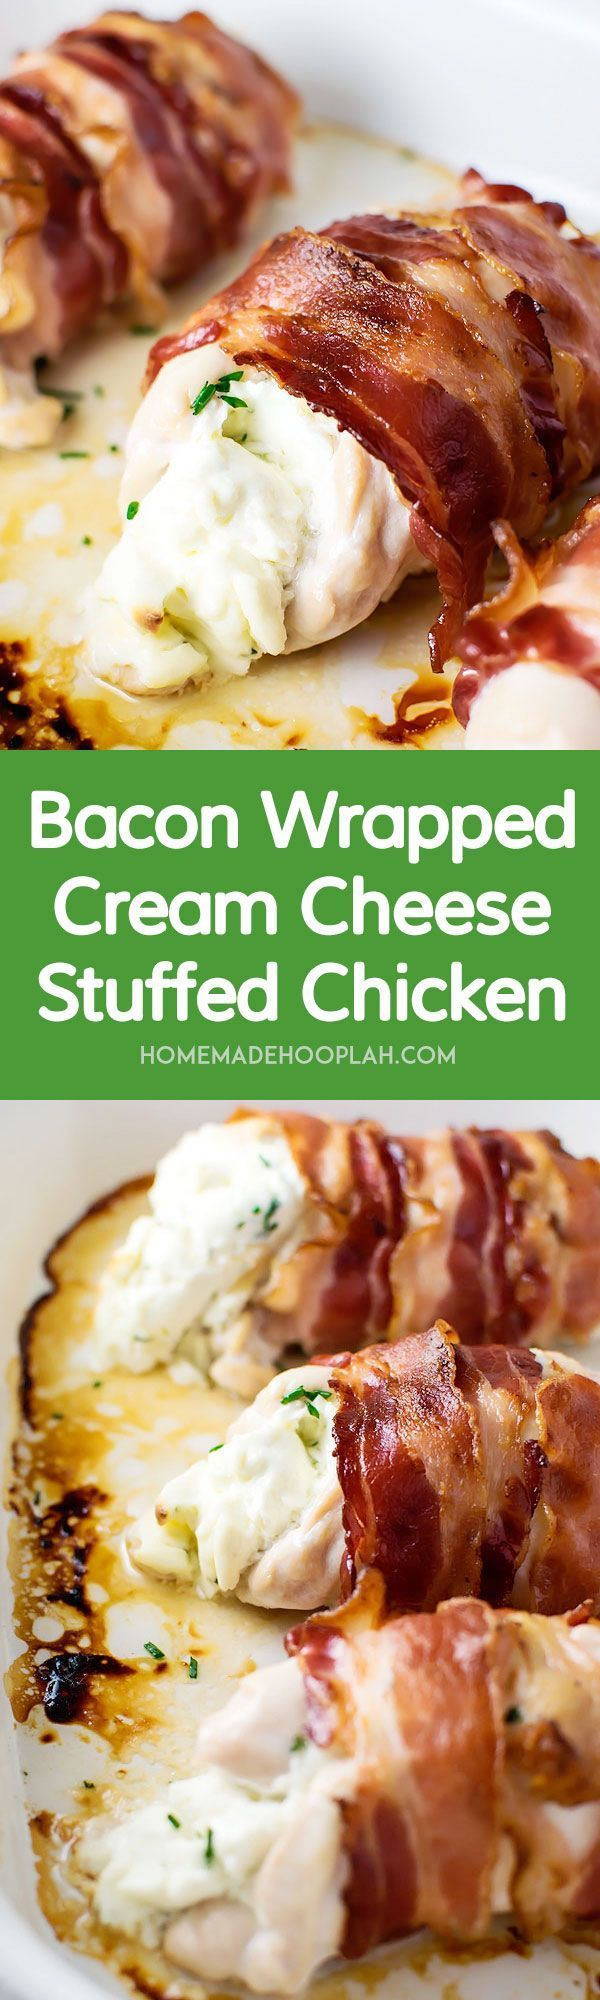 Bacon Wrapped Cream Cheese Stuffed Chicken  Tender Chicken Breast Stuffed  With Cream Cheese And Chives